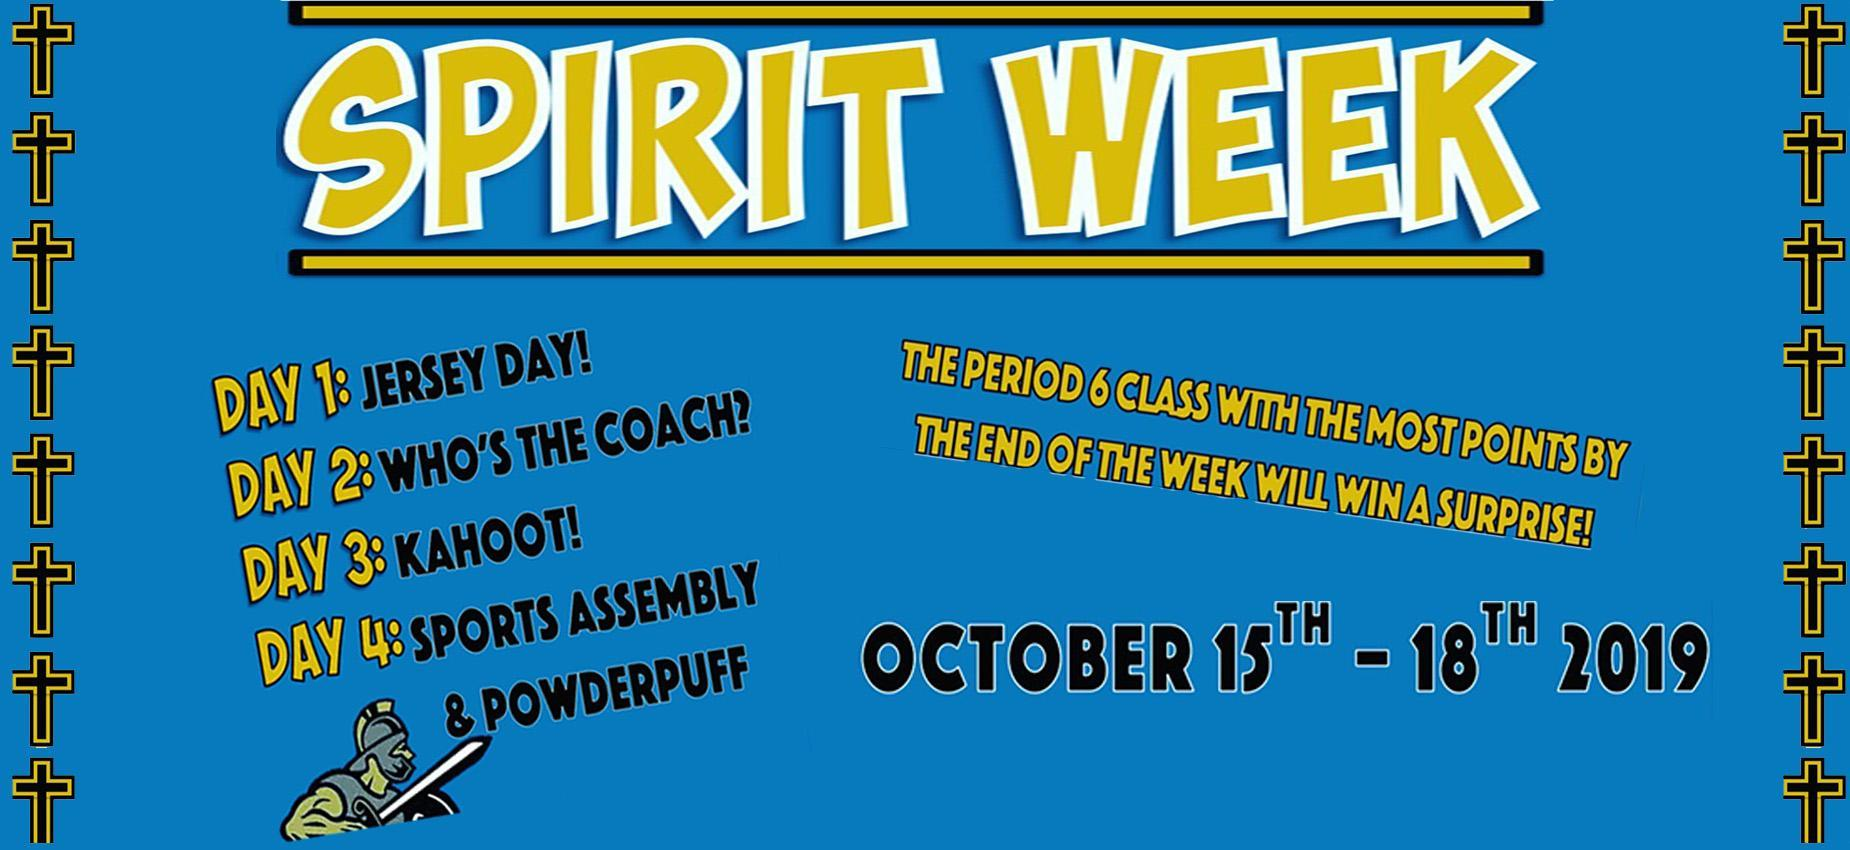 Spirit Week Oct 15-18